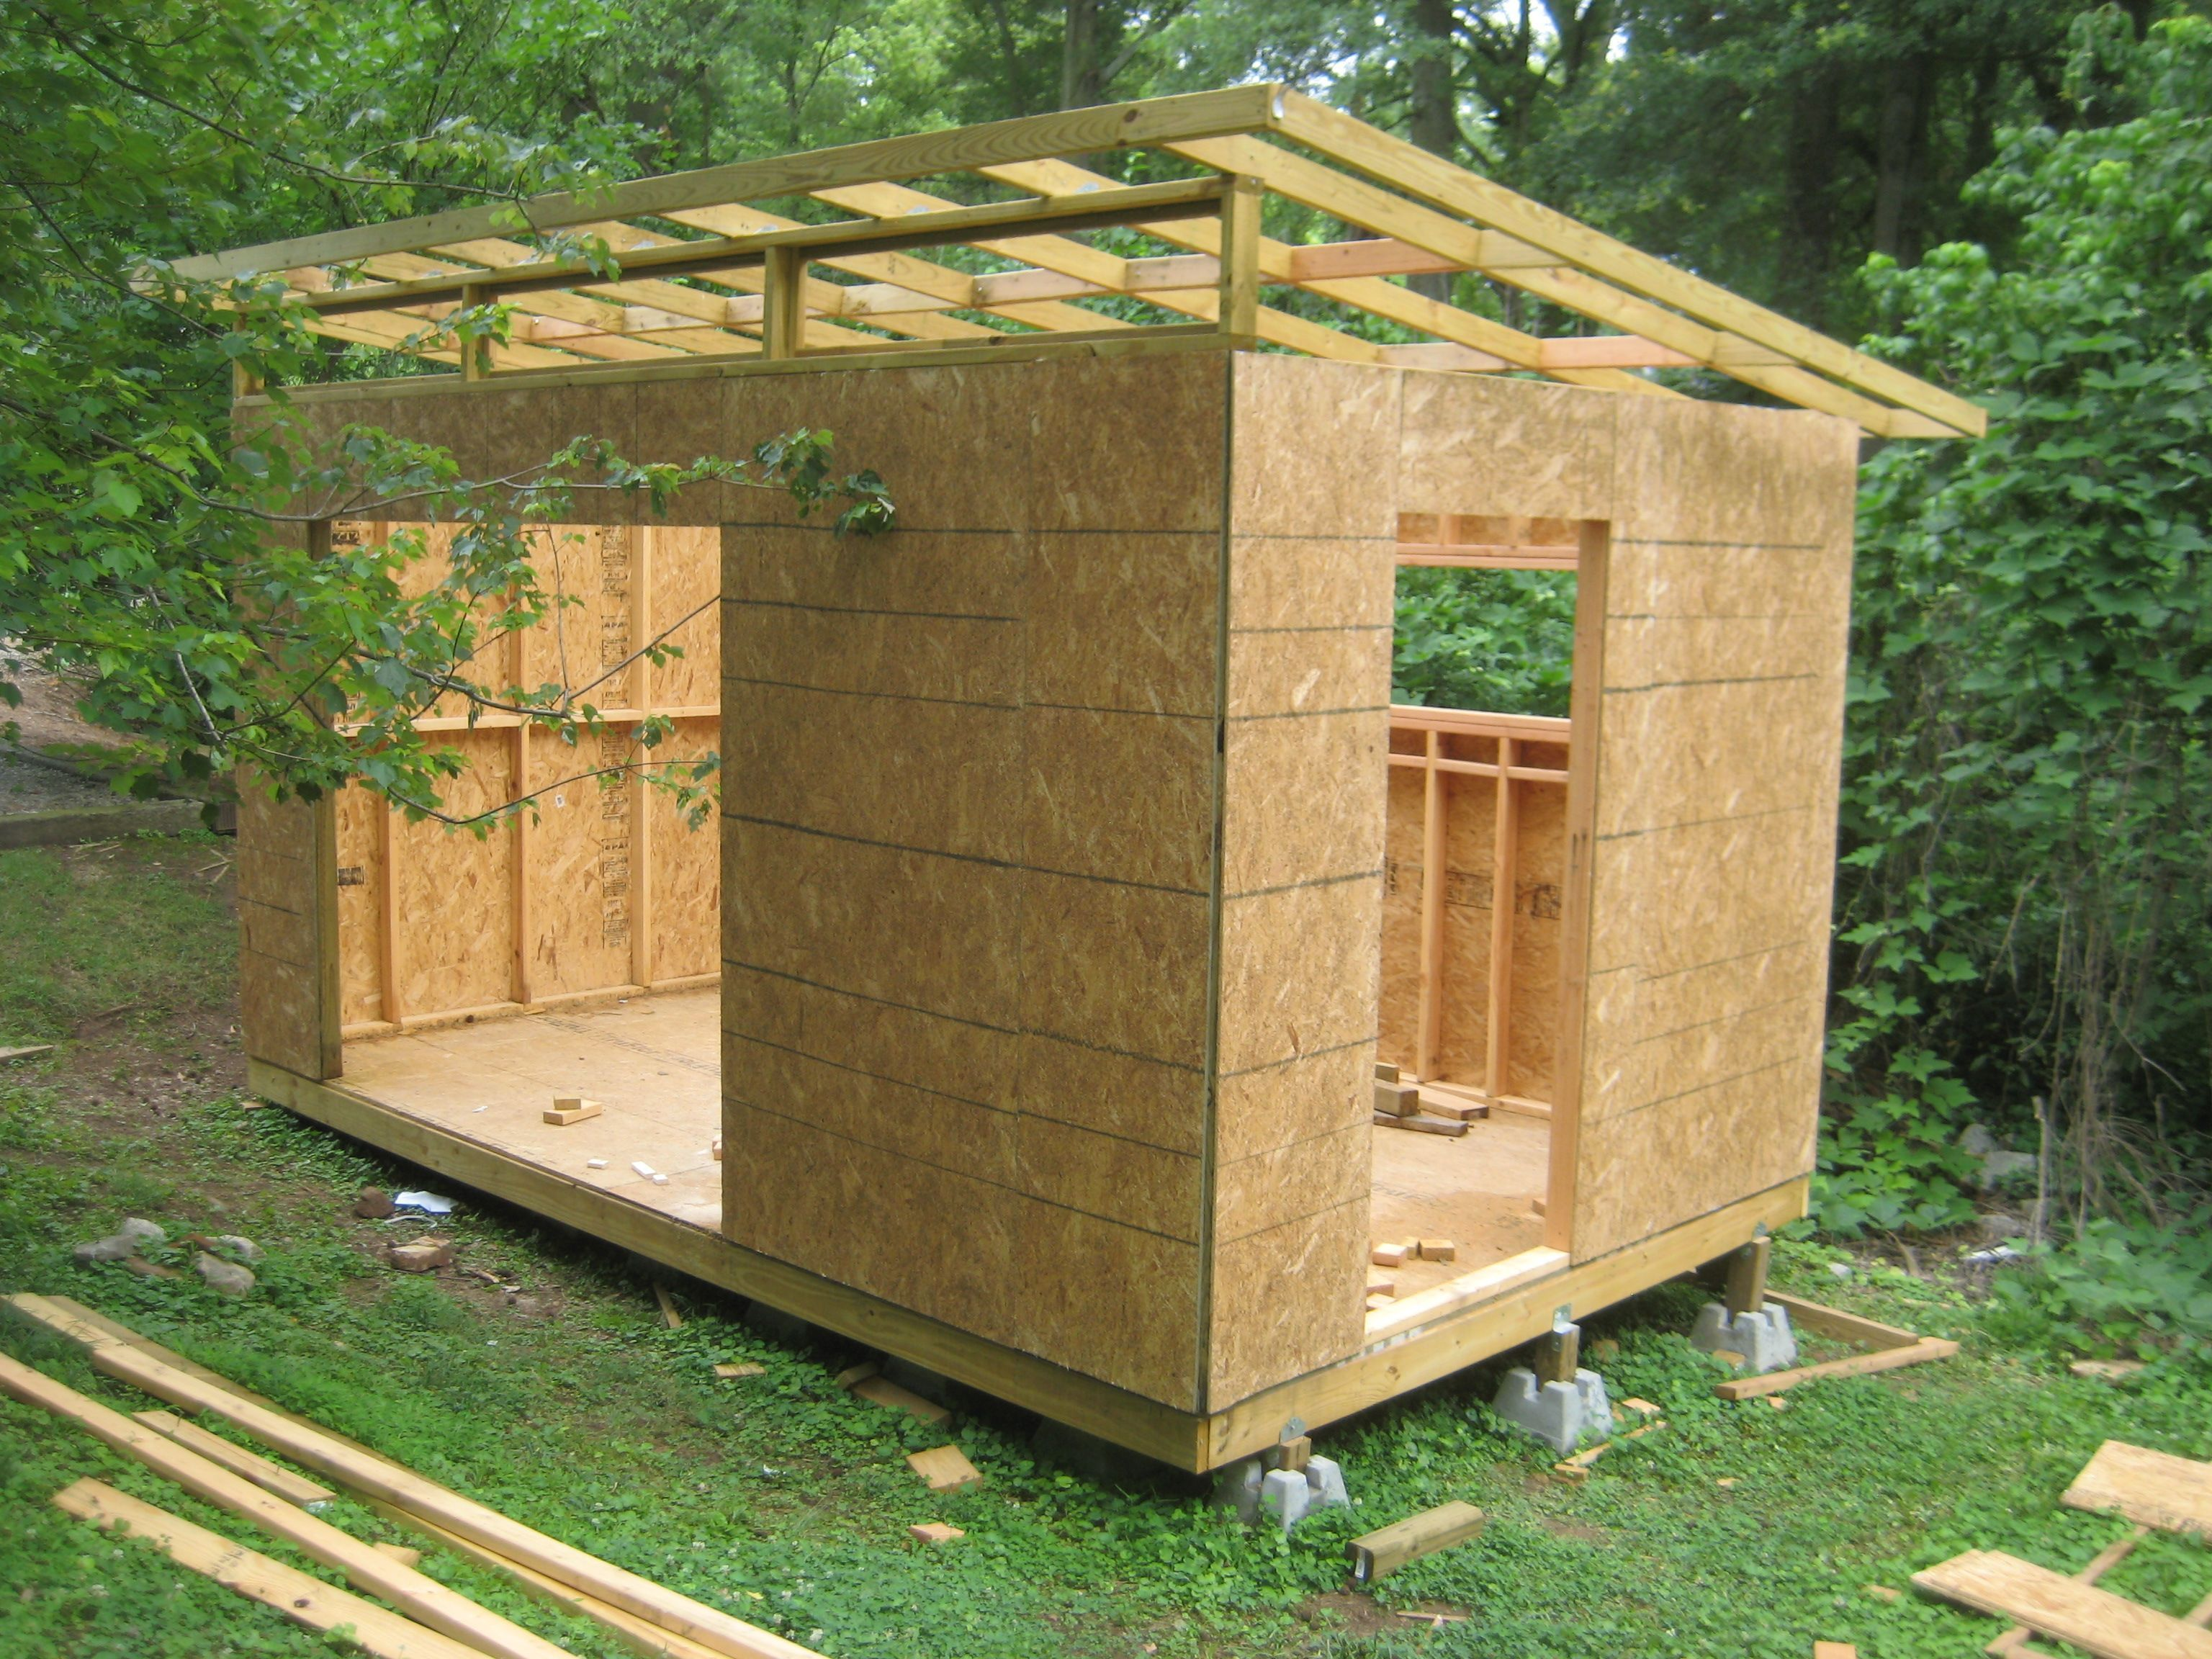 10 Gardening Shed Ideas Most Of The Brilliant And Beautiful Gardensheddecoration Modern Shed Shed Design Building A Shed Backyard garden shed ideas